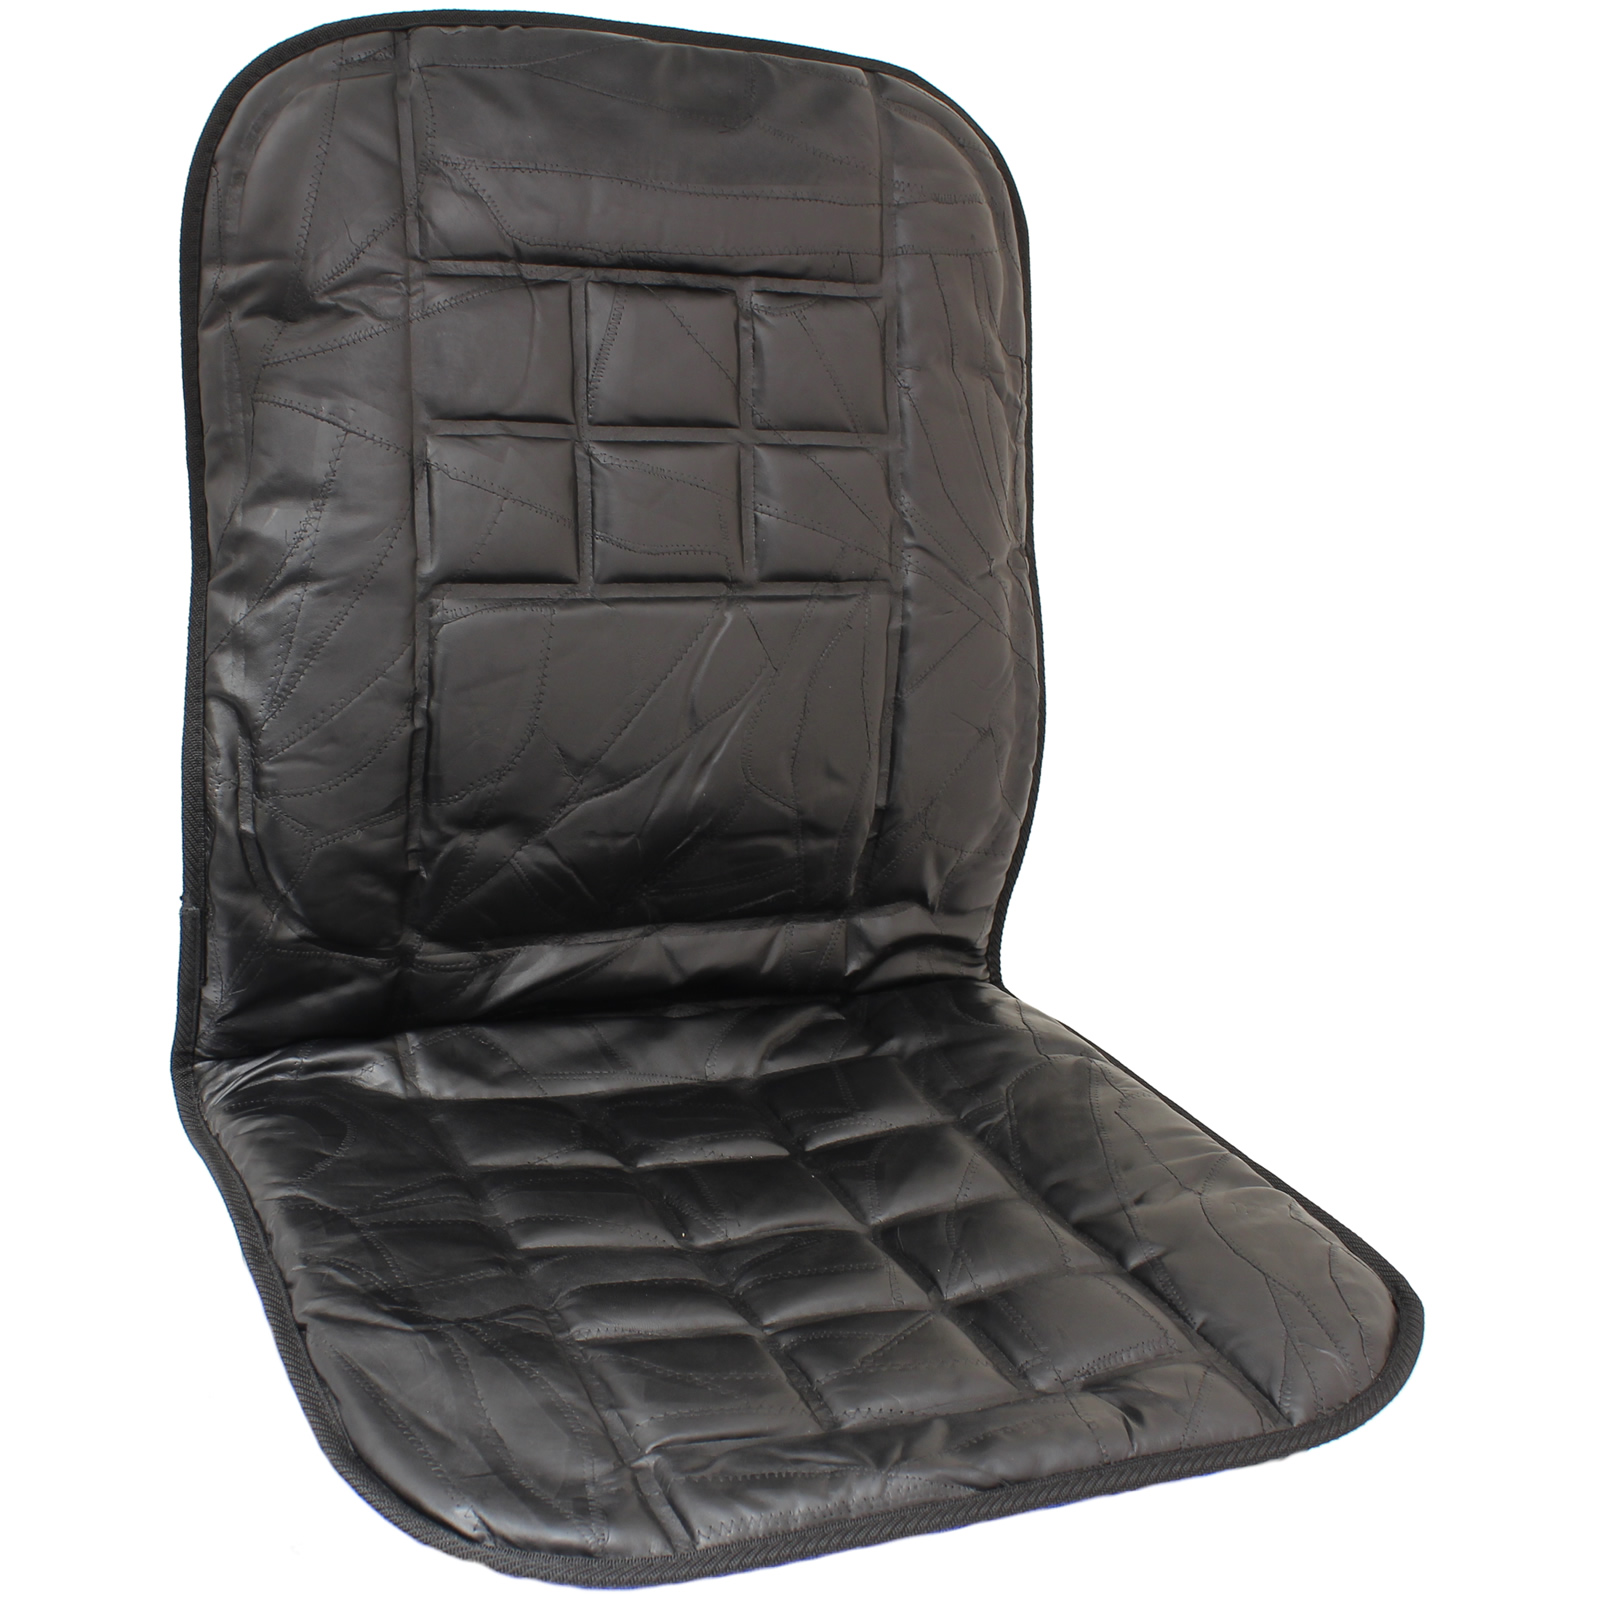 Leather Car Front Seat Cushion Protector Orthopaedic Back